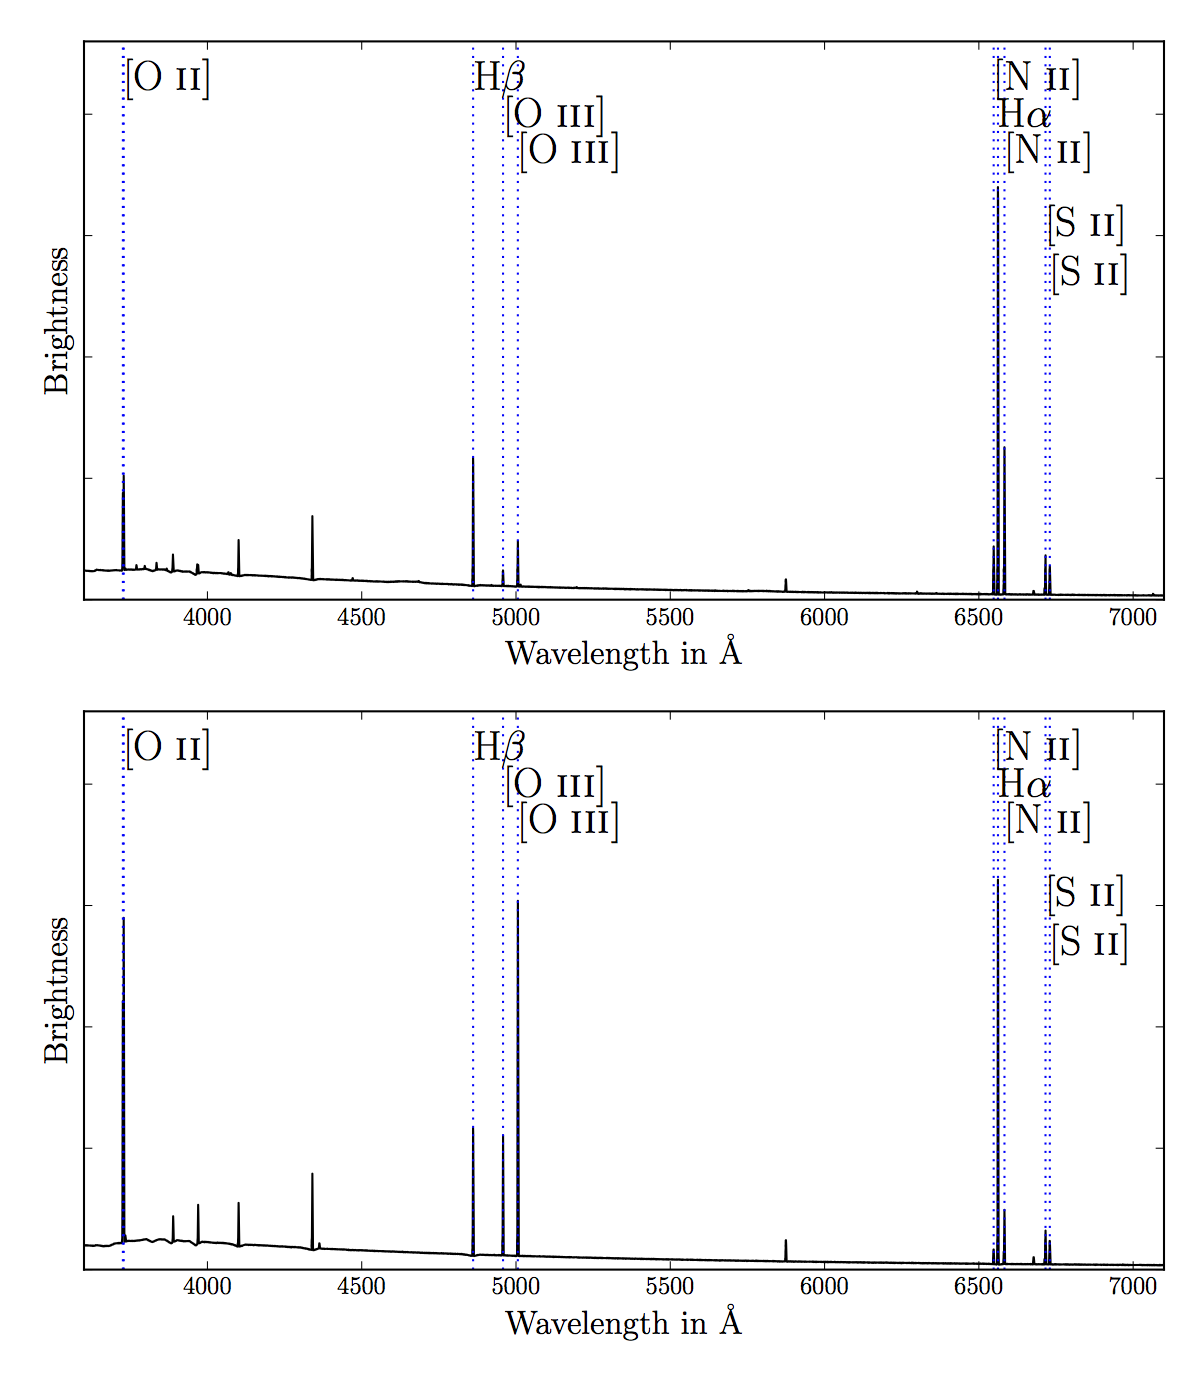 Figure 4. Spectrum of a high-metallicity (top) and low-metallicity (bottom) HII region. When the metallicity of the gas is low, the strength of the [OIII] and [OII] lines is greater compared to that of Hα, while the strength of the [NII] and [SII] lines decreases.